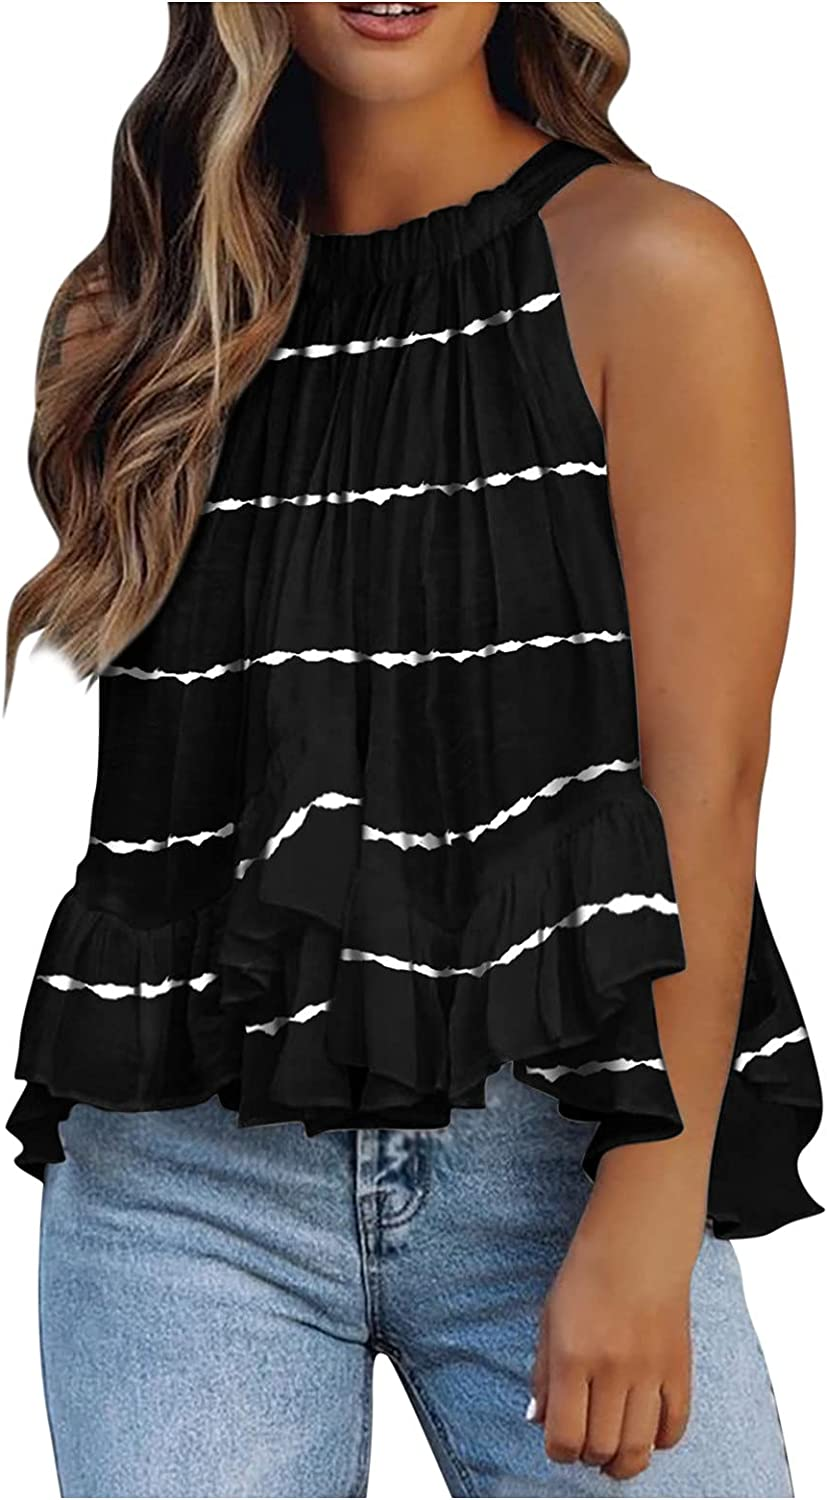 Cfcys Womens Fashion Tank Tops - Pleated Puffy Ruffle Camisole Fancy Striped High Low Cami Shirts Crew Neck Loose Baggy Vest